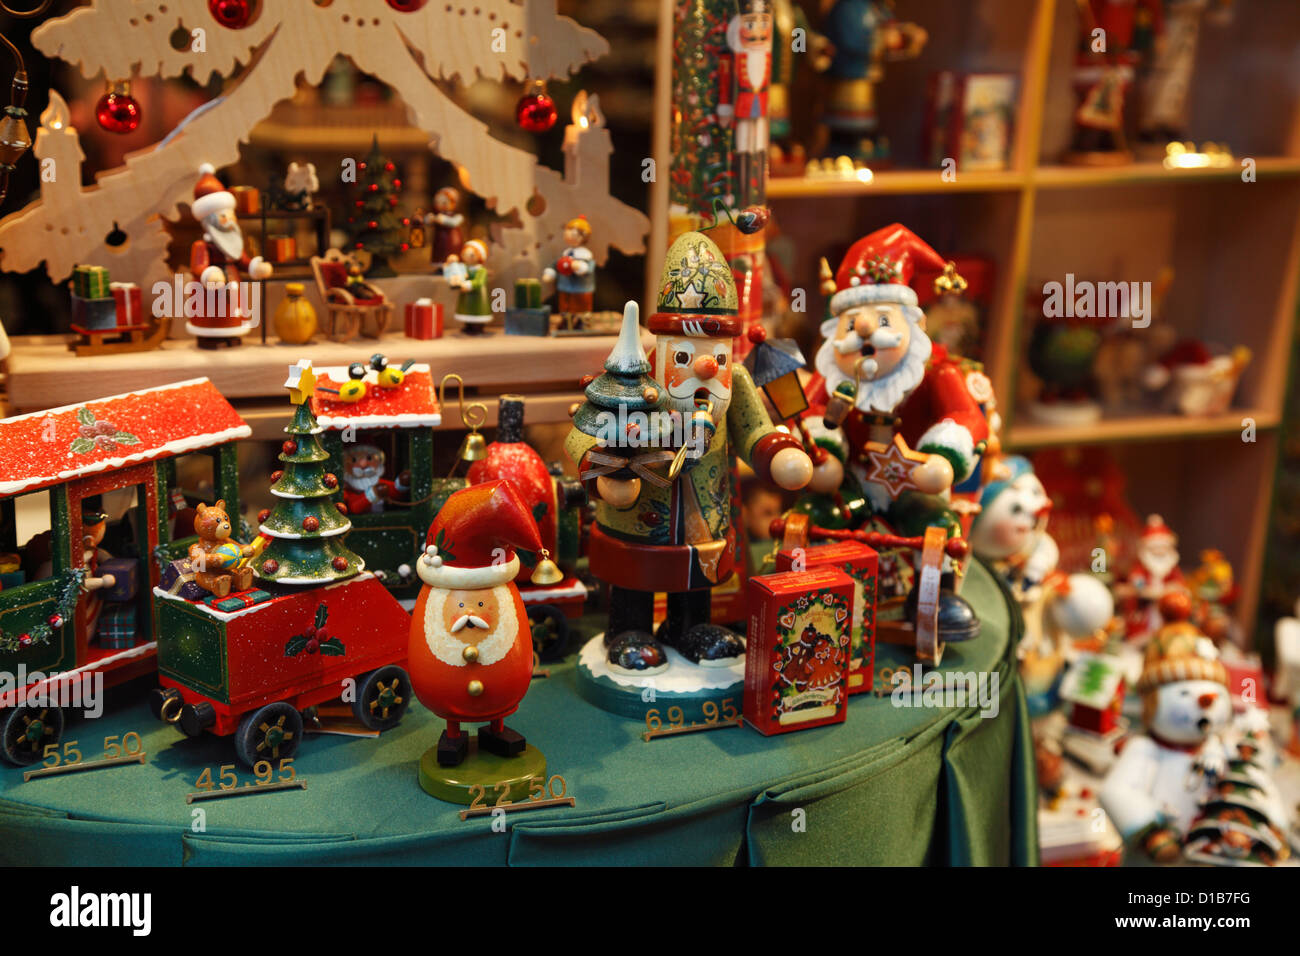 Christmas Toys And Decorations In A Store Window Display In Bruges, Belgium